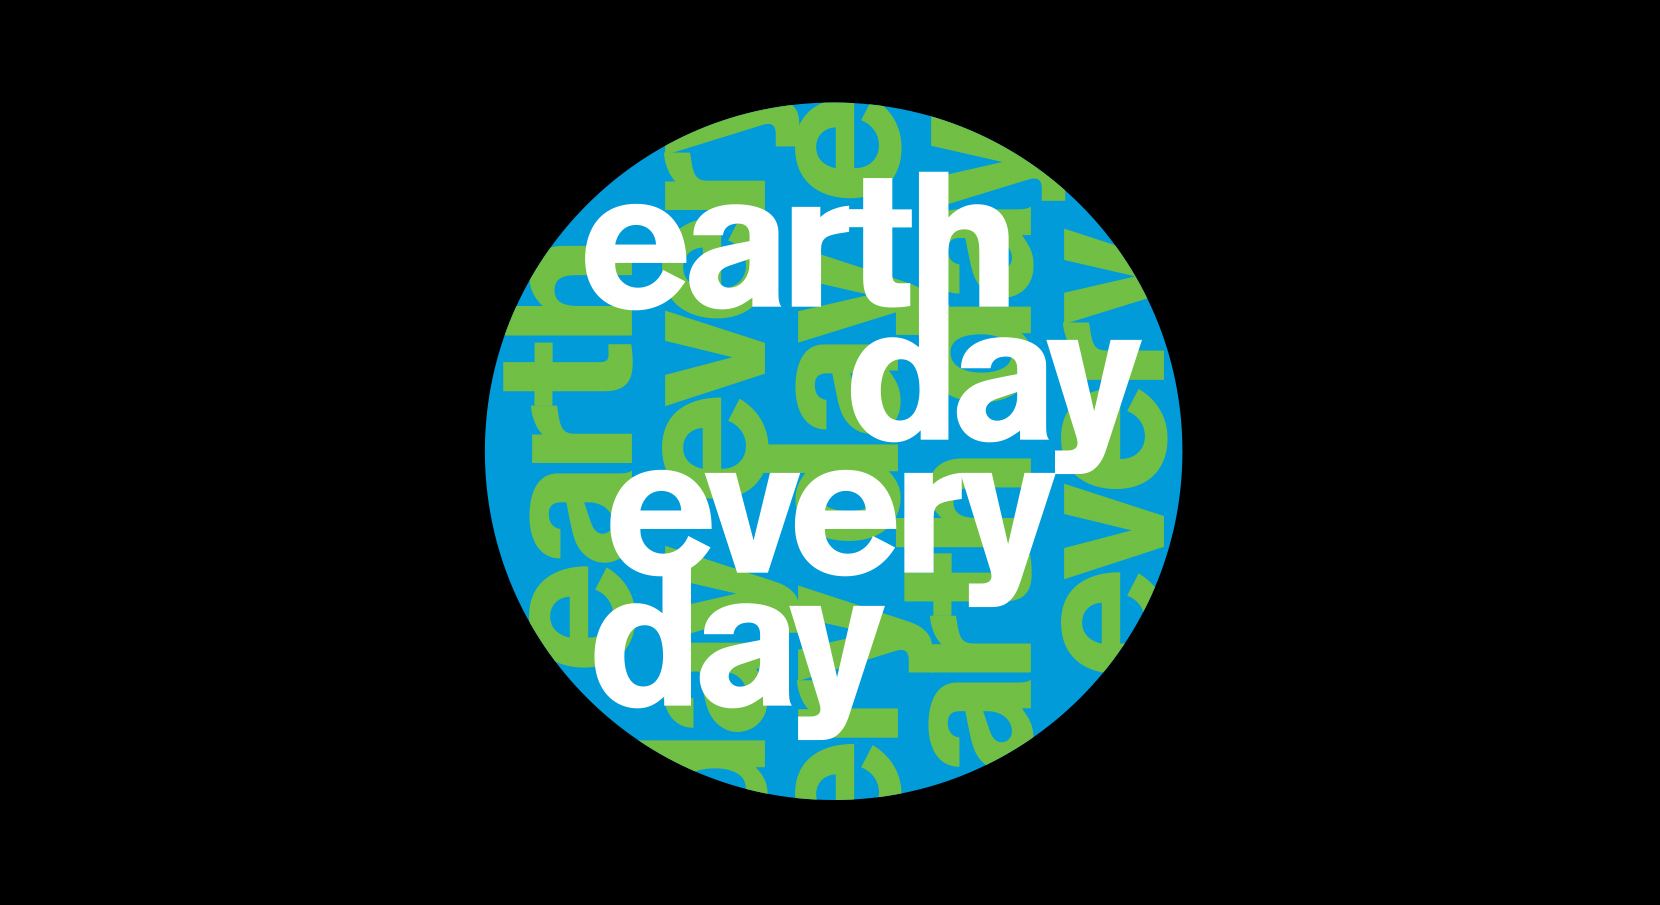 earth month every day